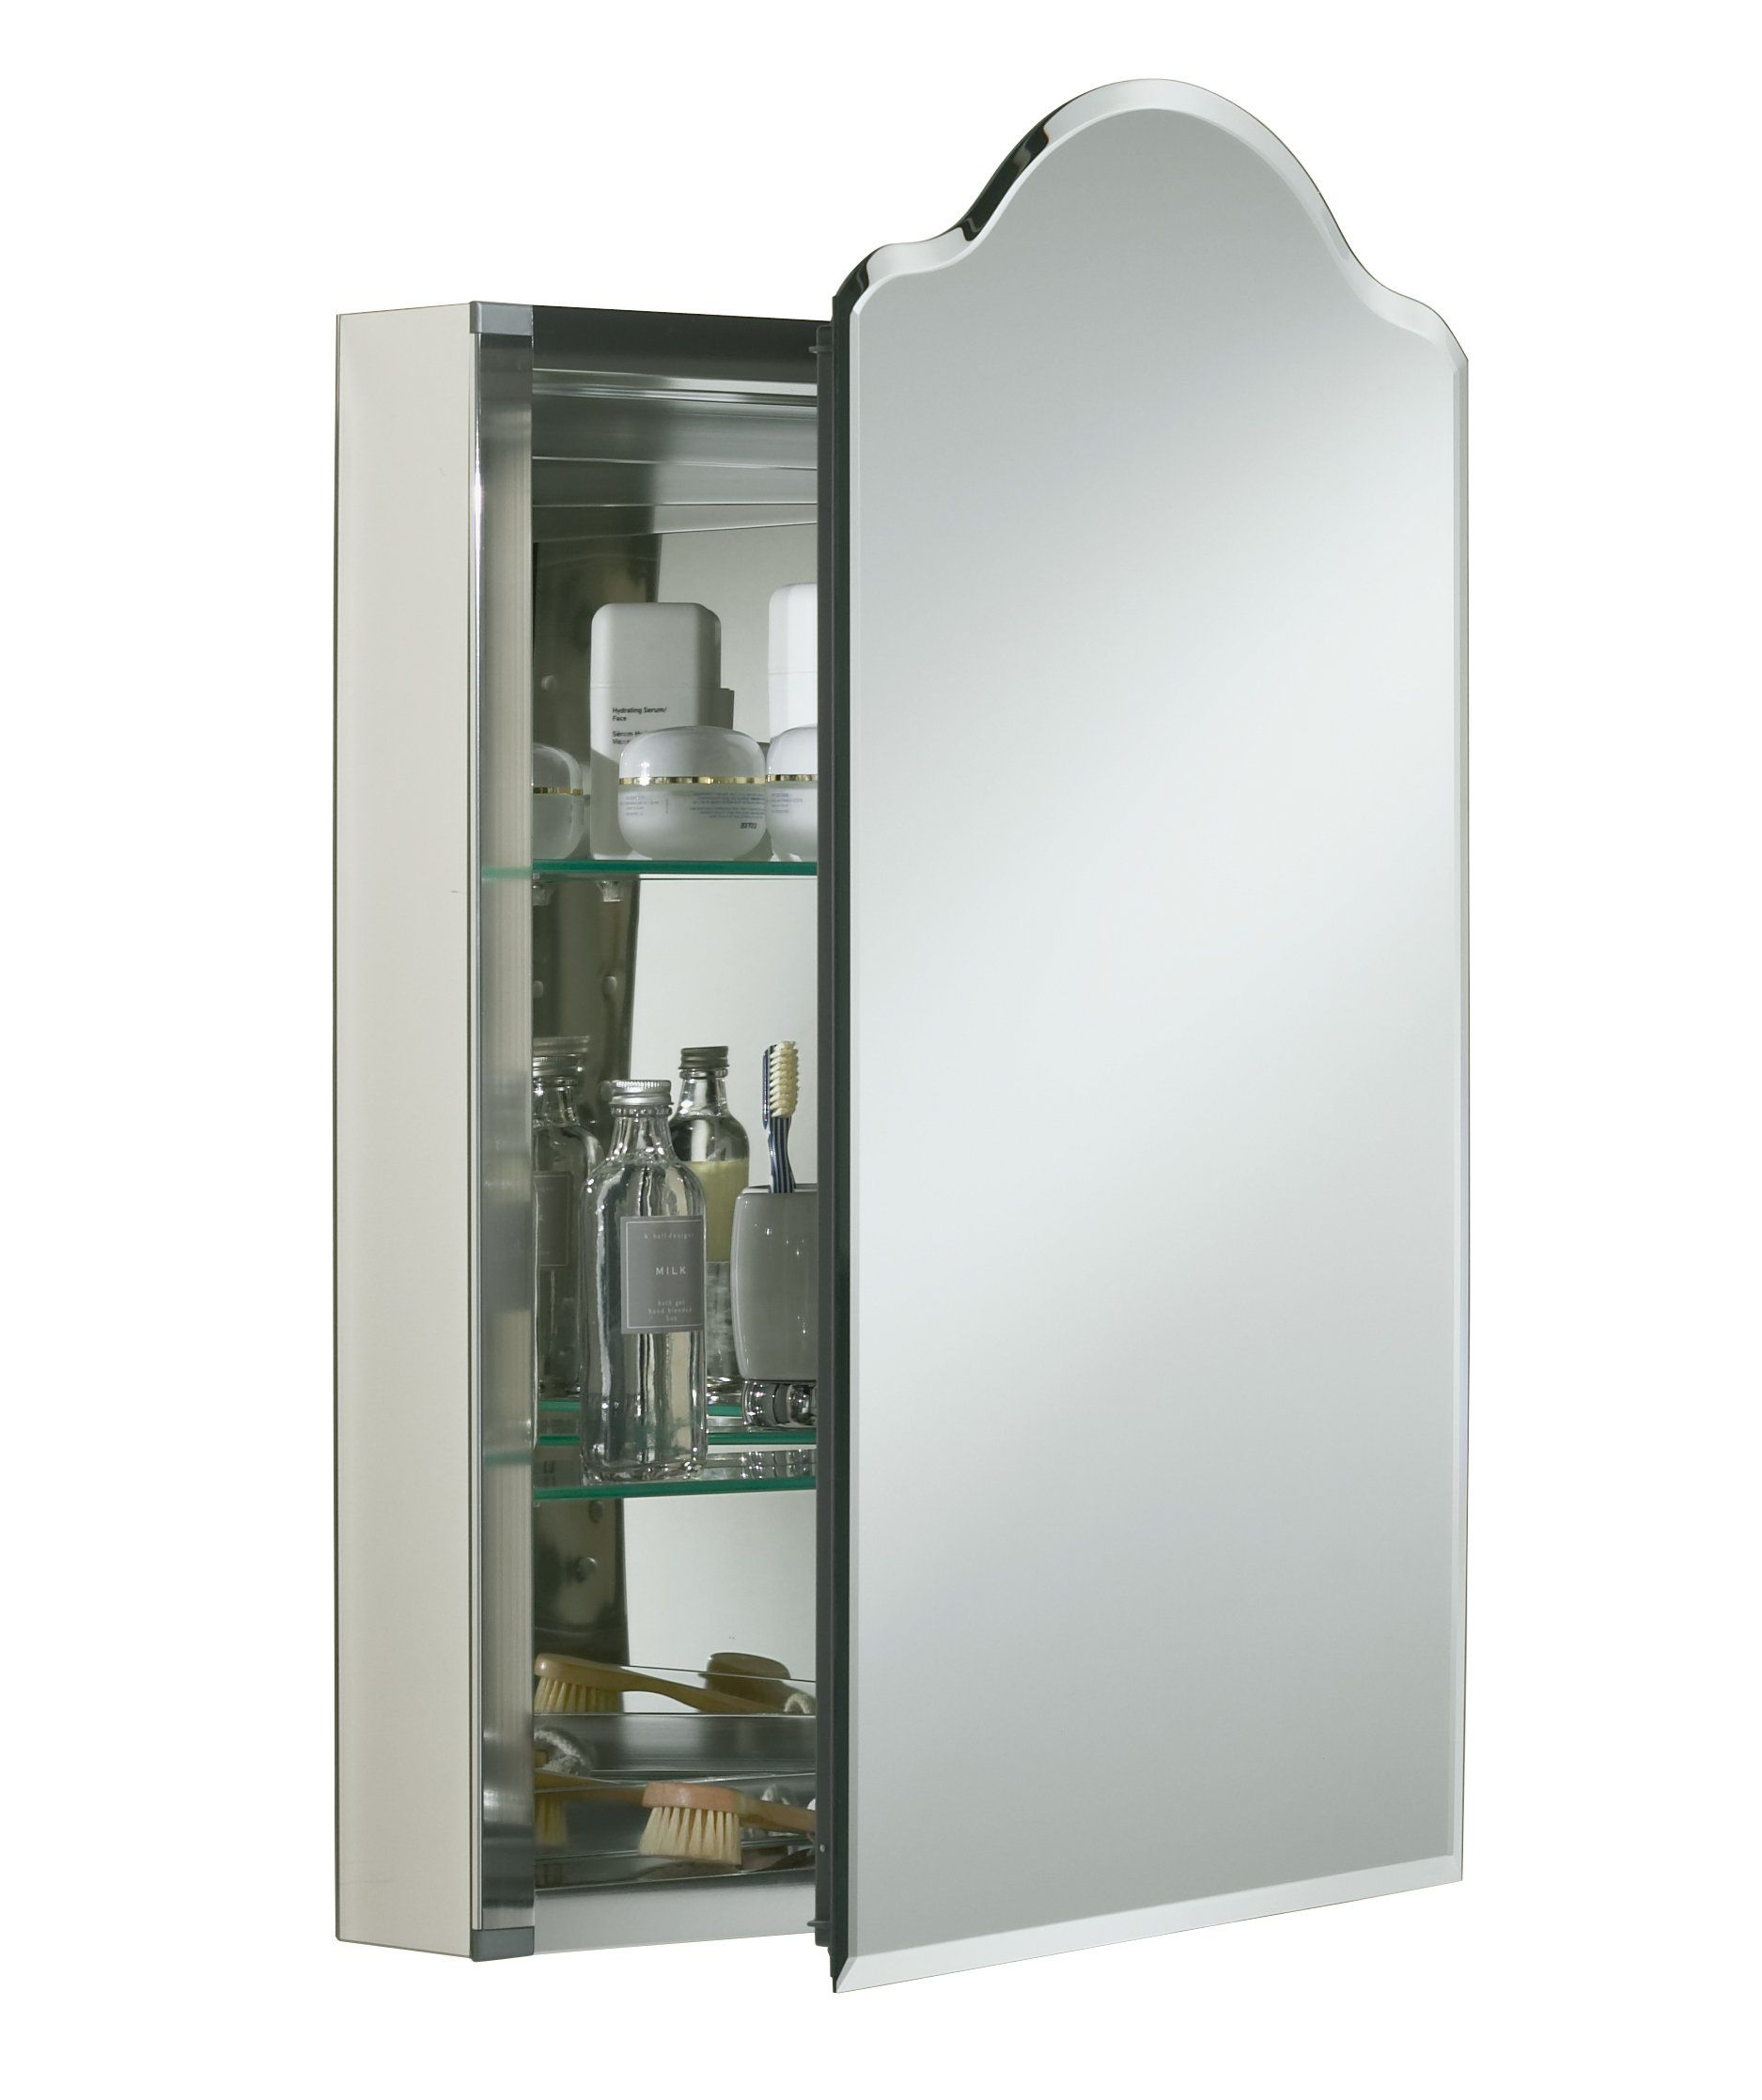 Kohler K Cb Clc2030vas Single Door 20 Inch W By 30 Inch H By 5 Inch D Aluminum Cabinet Built In Kitchen Cabinetry Amazon Com Mirror Cabinets Bathroom Medicine Cabinet Medicine Cabinet Mirror